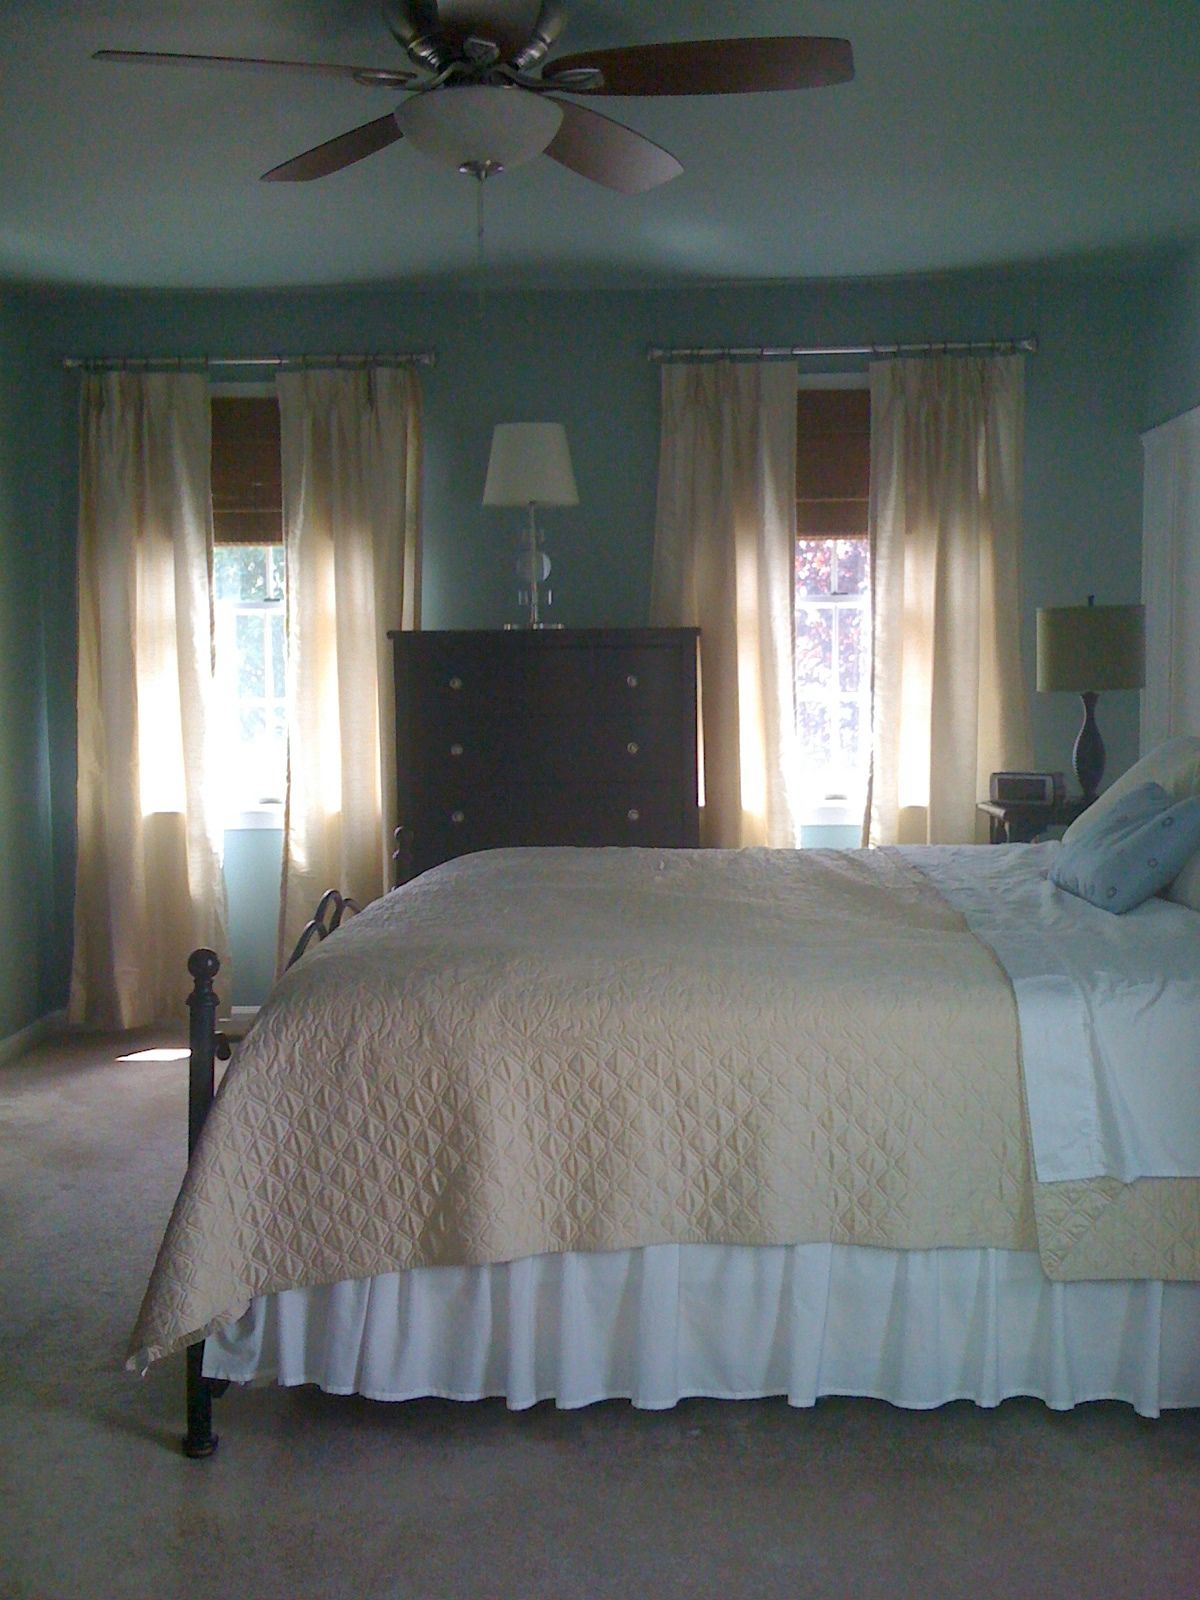 Spa Like Bedroom Colors - Loveyourroom One Day Spa Bedroom